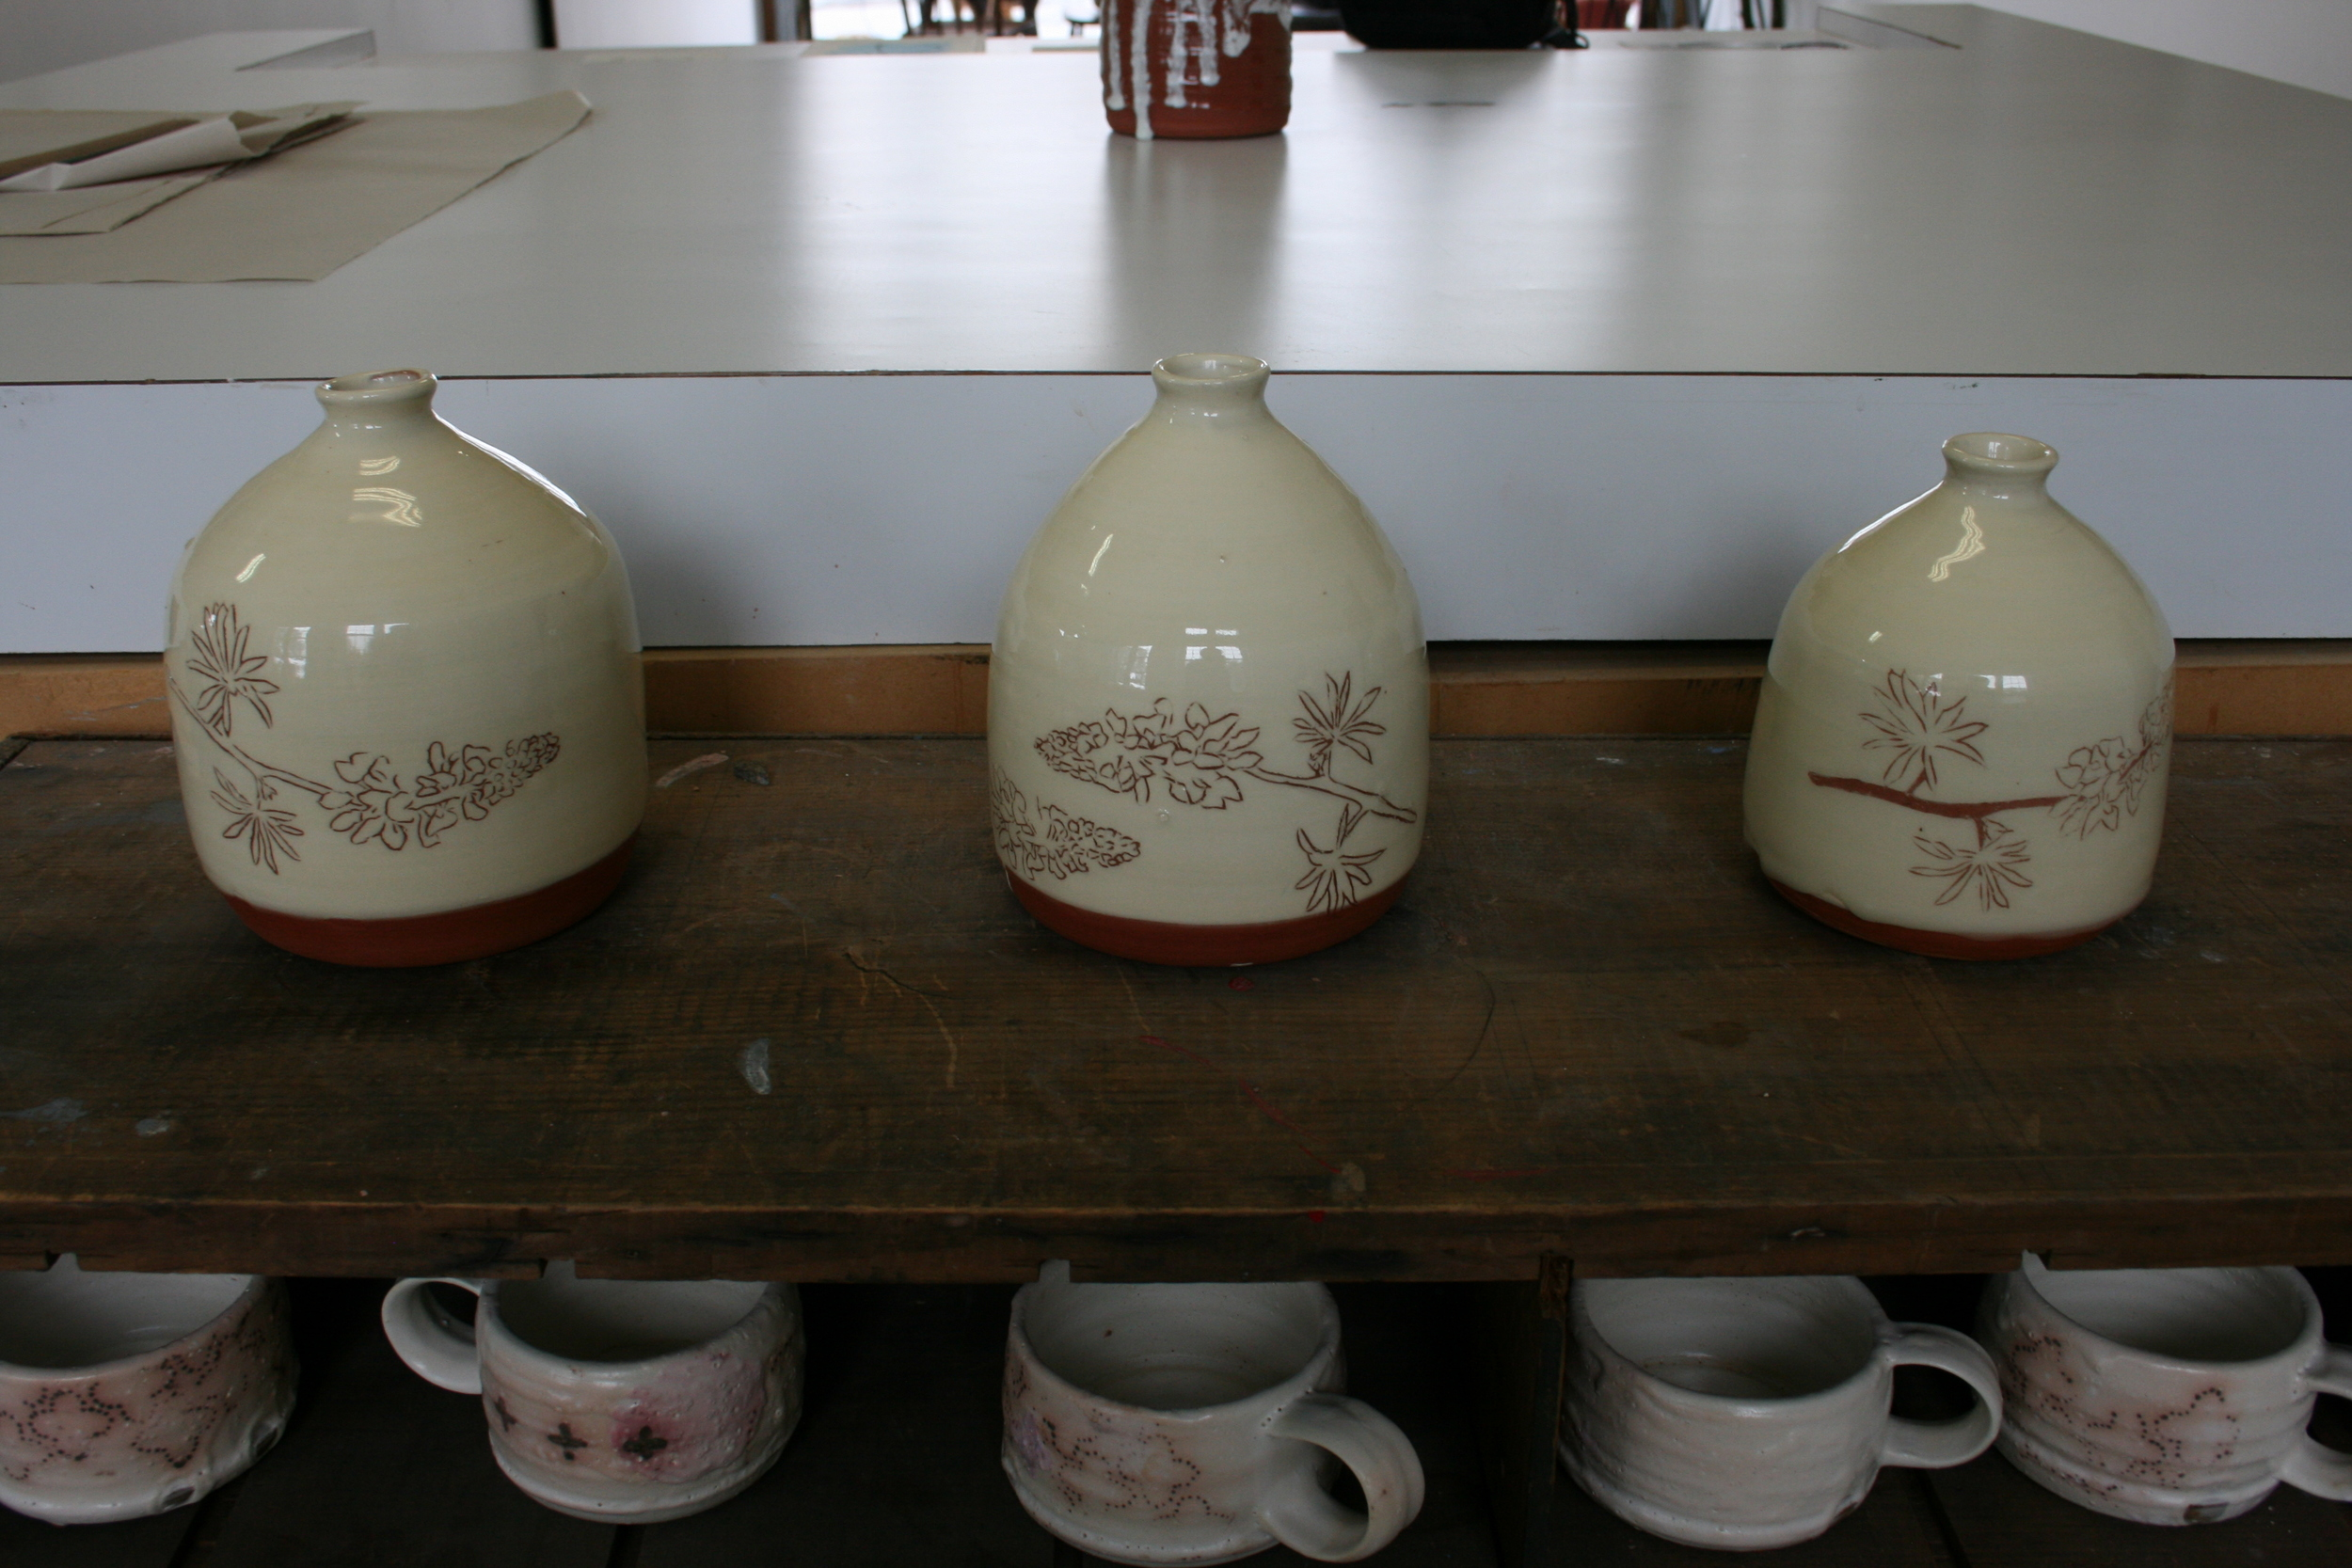 Erin and I's collaboration. Erin made these vessels and I draw the Lunenburg Lupines on them.